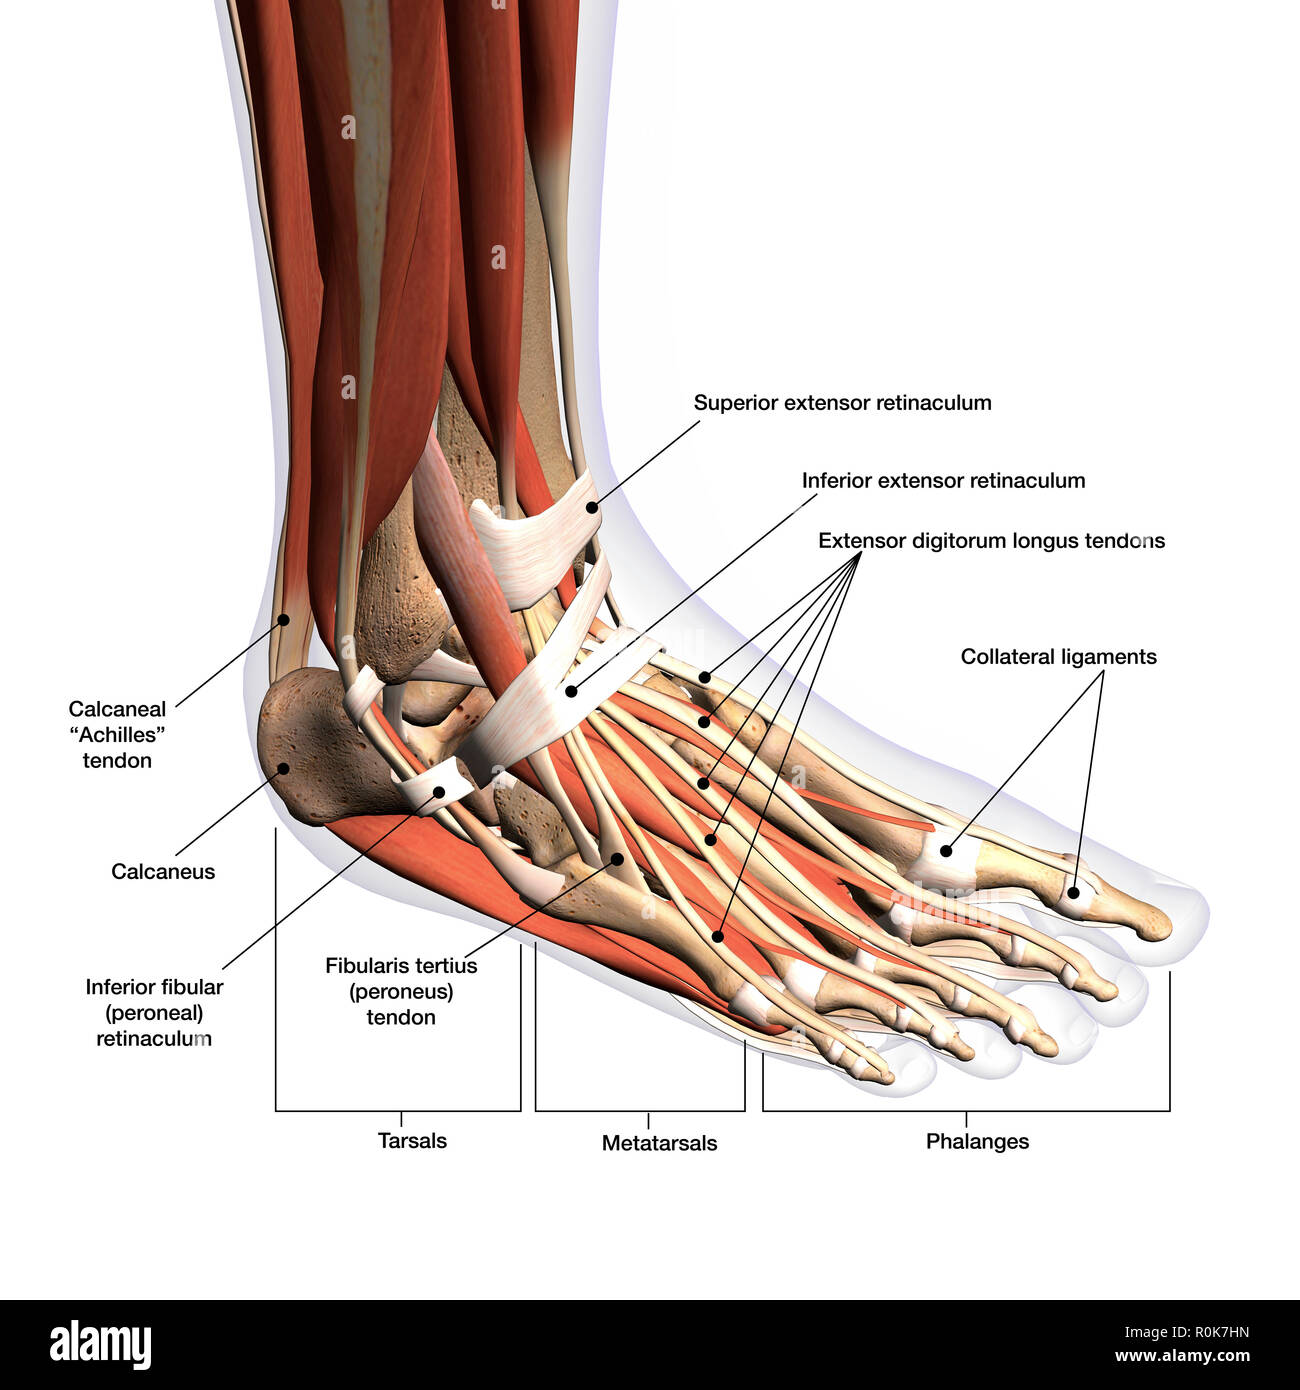 anatomy of human foot with labels stock photo - alamy  alamy